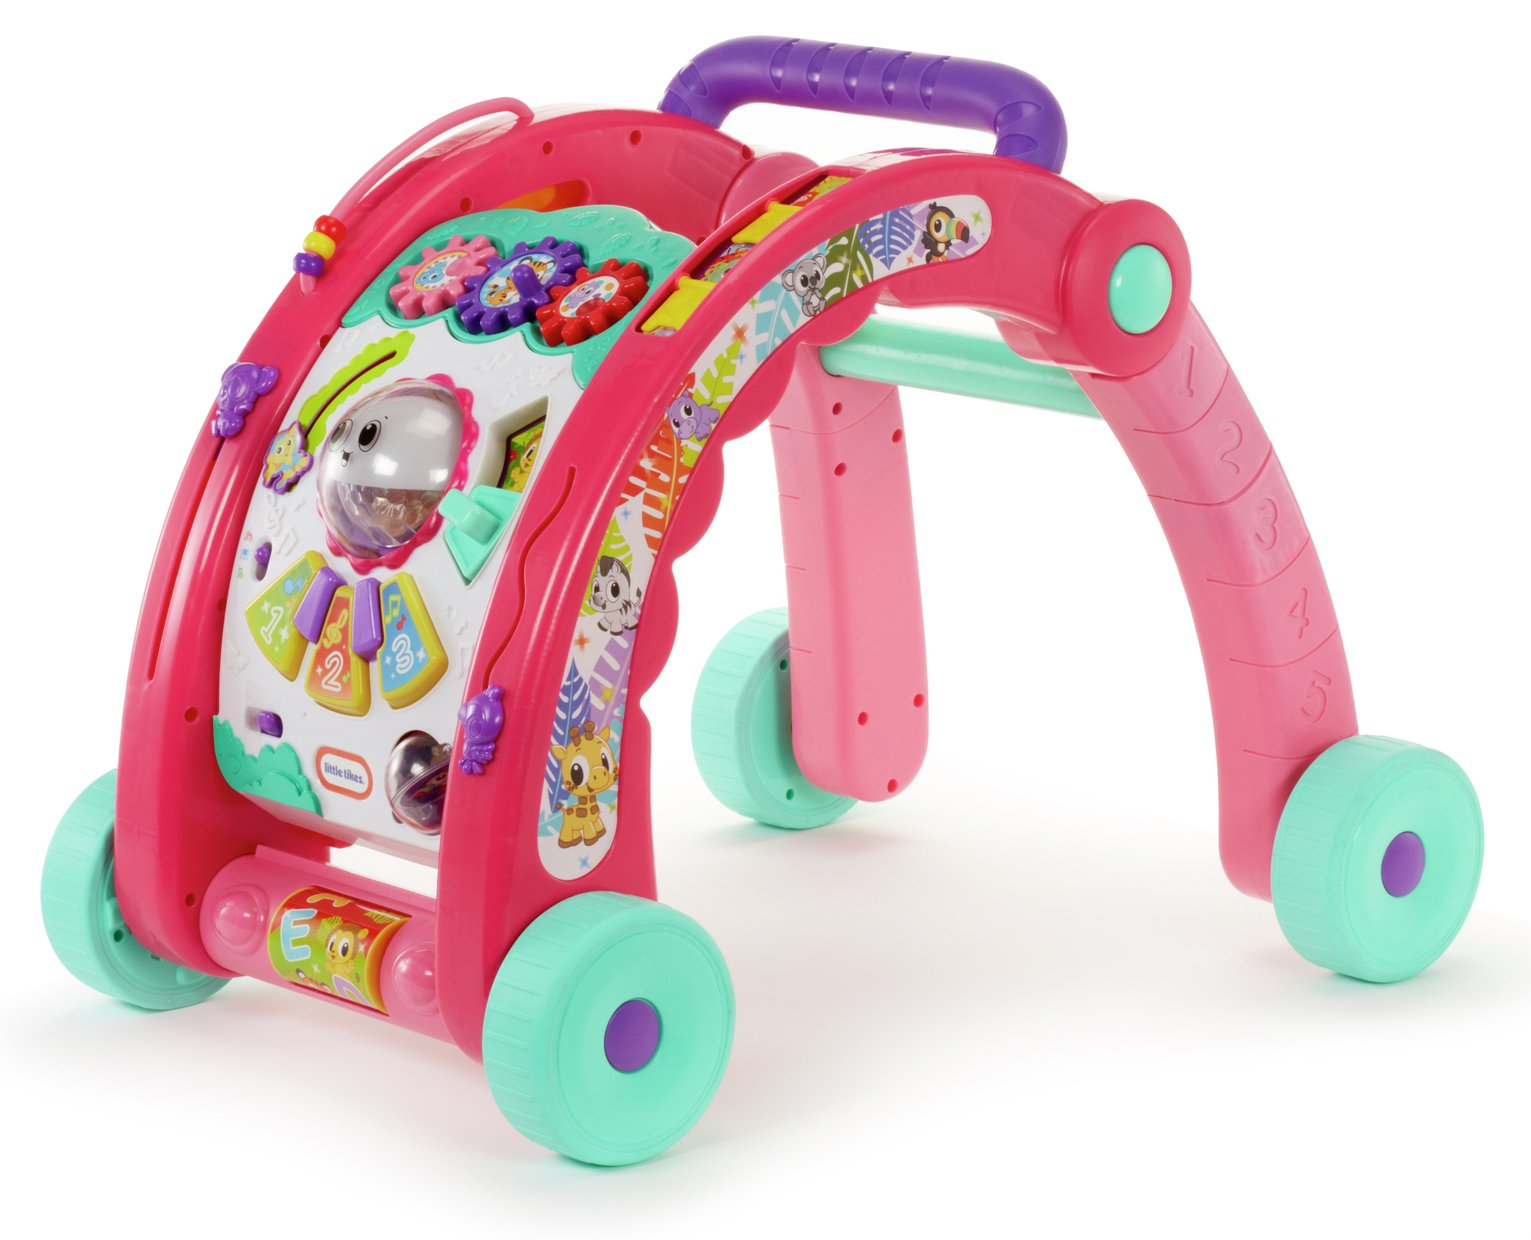 Little Tikes 3-in-1 Activity Walker - Pink from Little Tikes